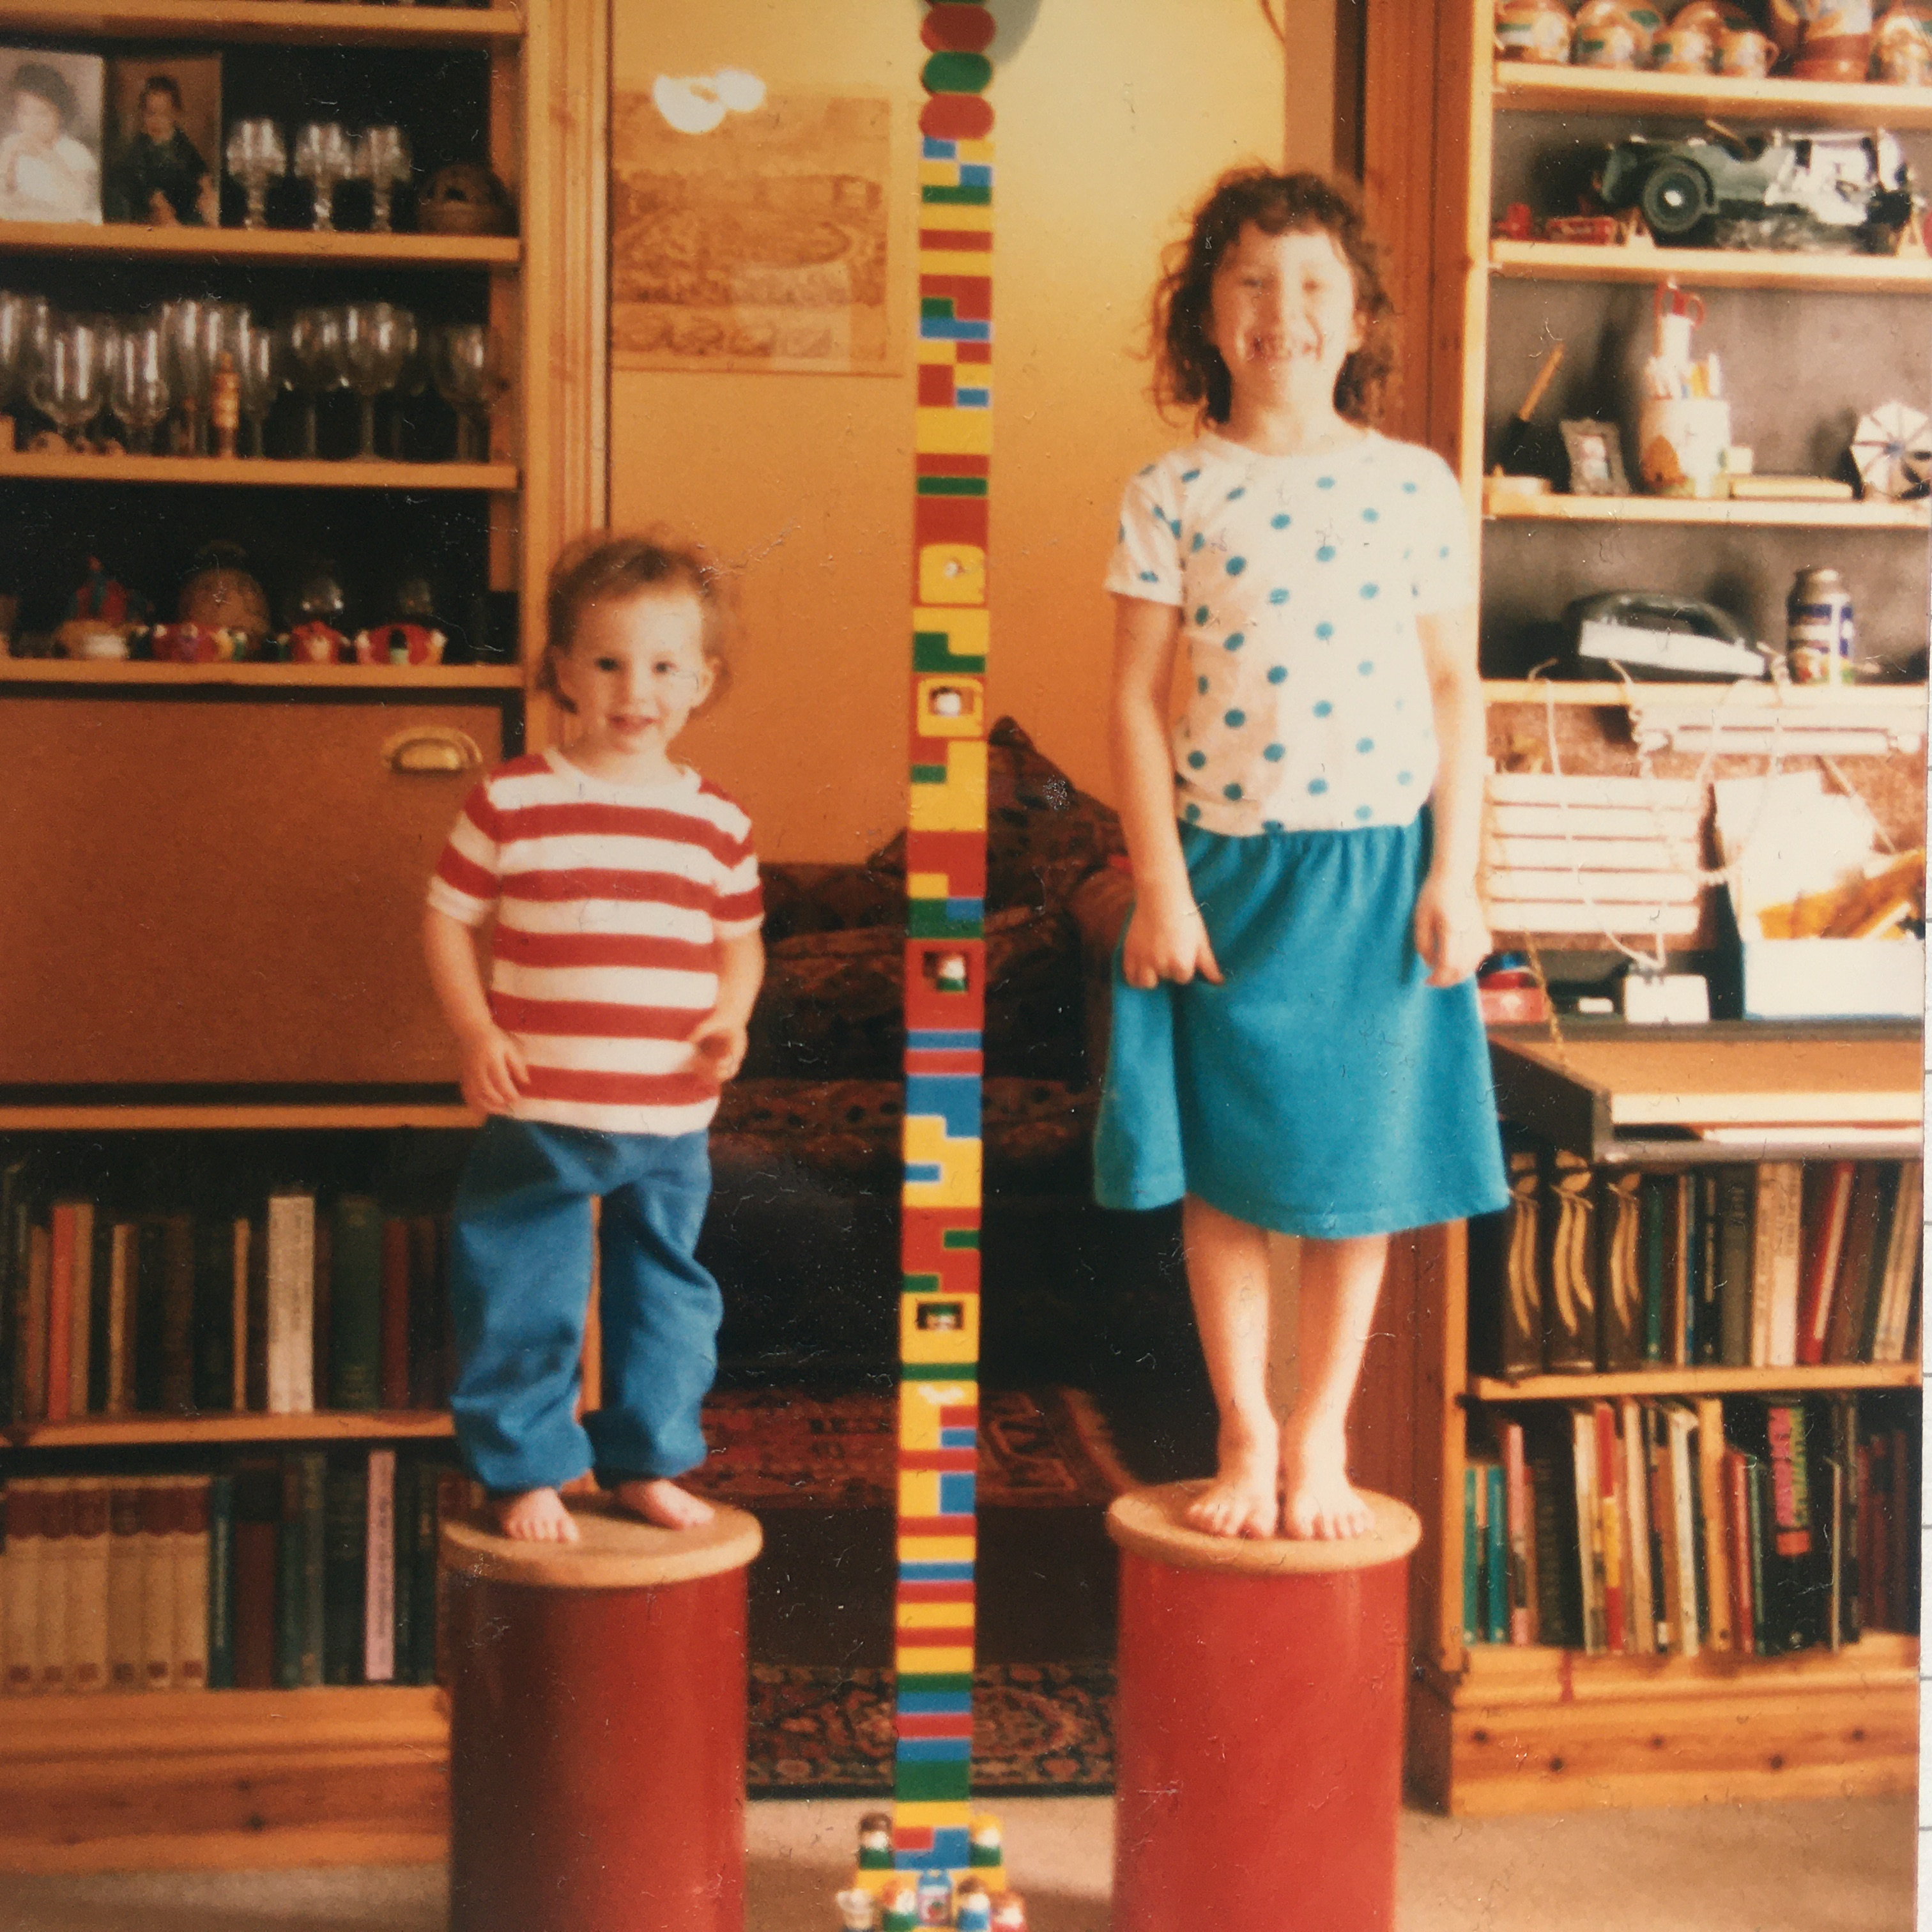 An old photography of Touretteshero and Fat Sister as children. Touretteshero is wearing a blue skirt and white top with black polkadot and is standing on an upturned red barrel and is smiling widely. Fat Sister is wearing a red and white striped t shirt and blue jeans and is also standing on an upturned red barrel on the left. In between the sisters is an enormous colourful duplo tower taller than both of then and the length of the height of the photograph. There are bookcases on either side of the sisters.